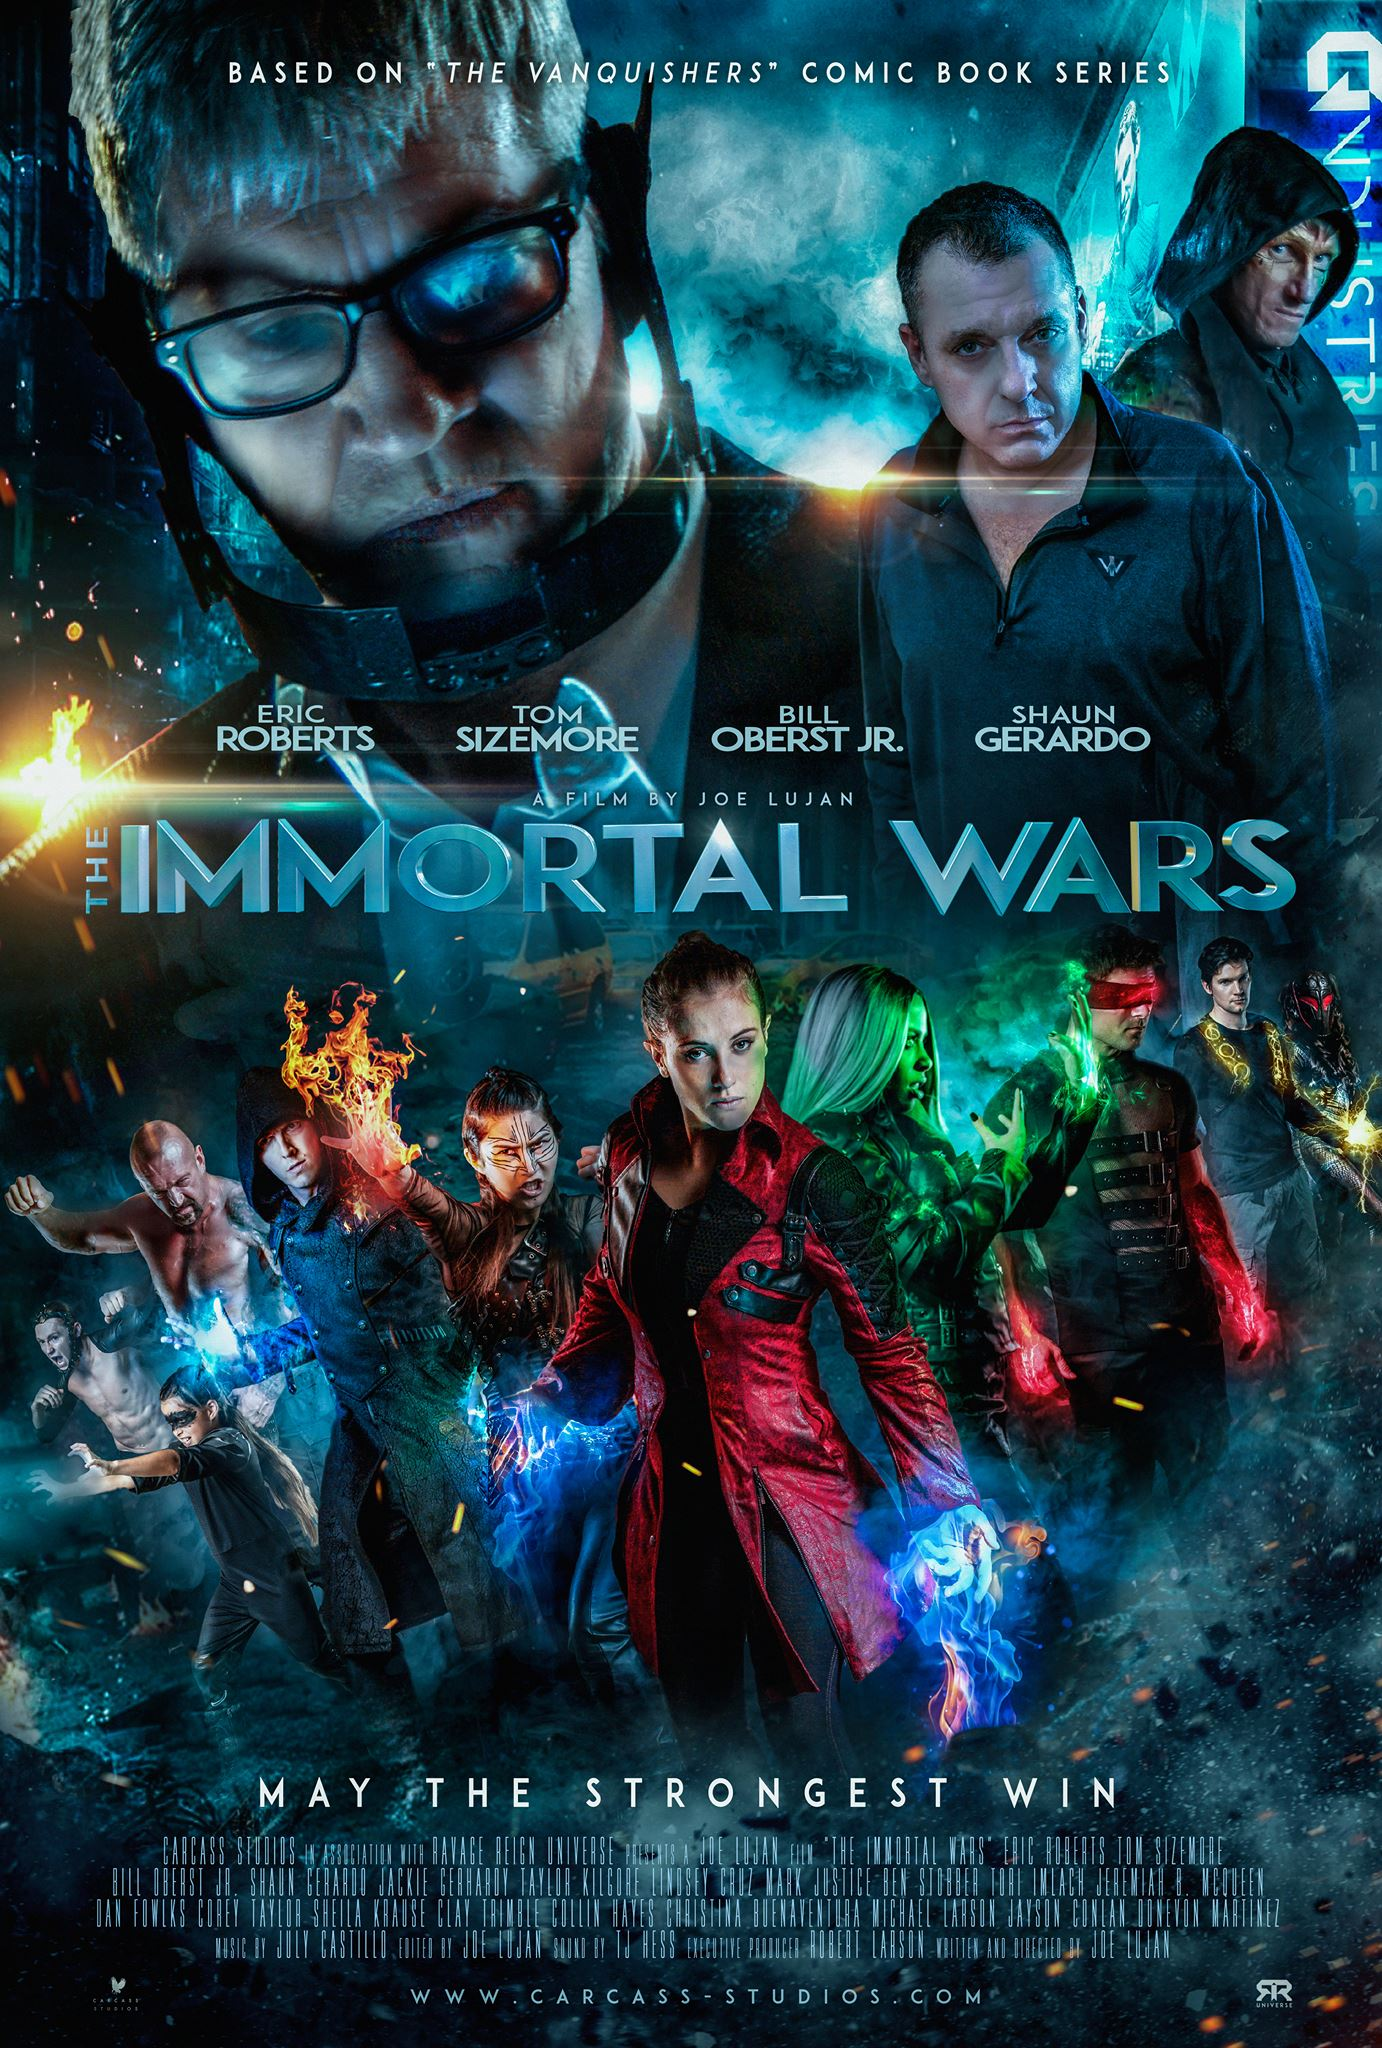 The Immortal Wars Official Poster.jpg